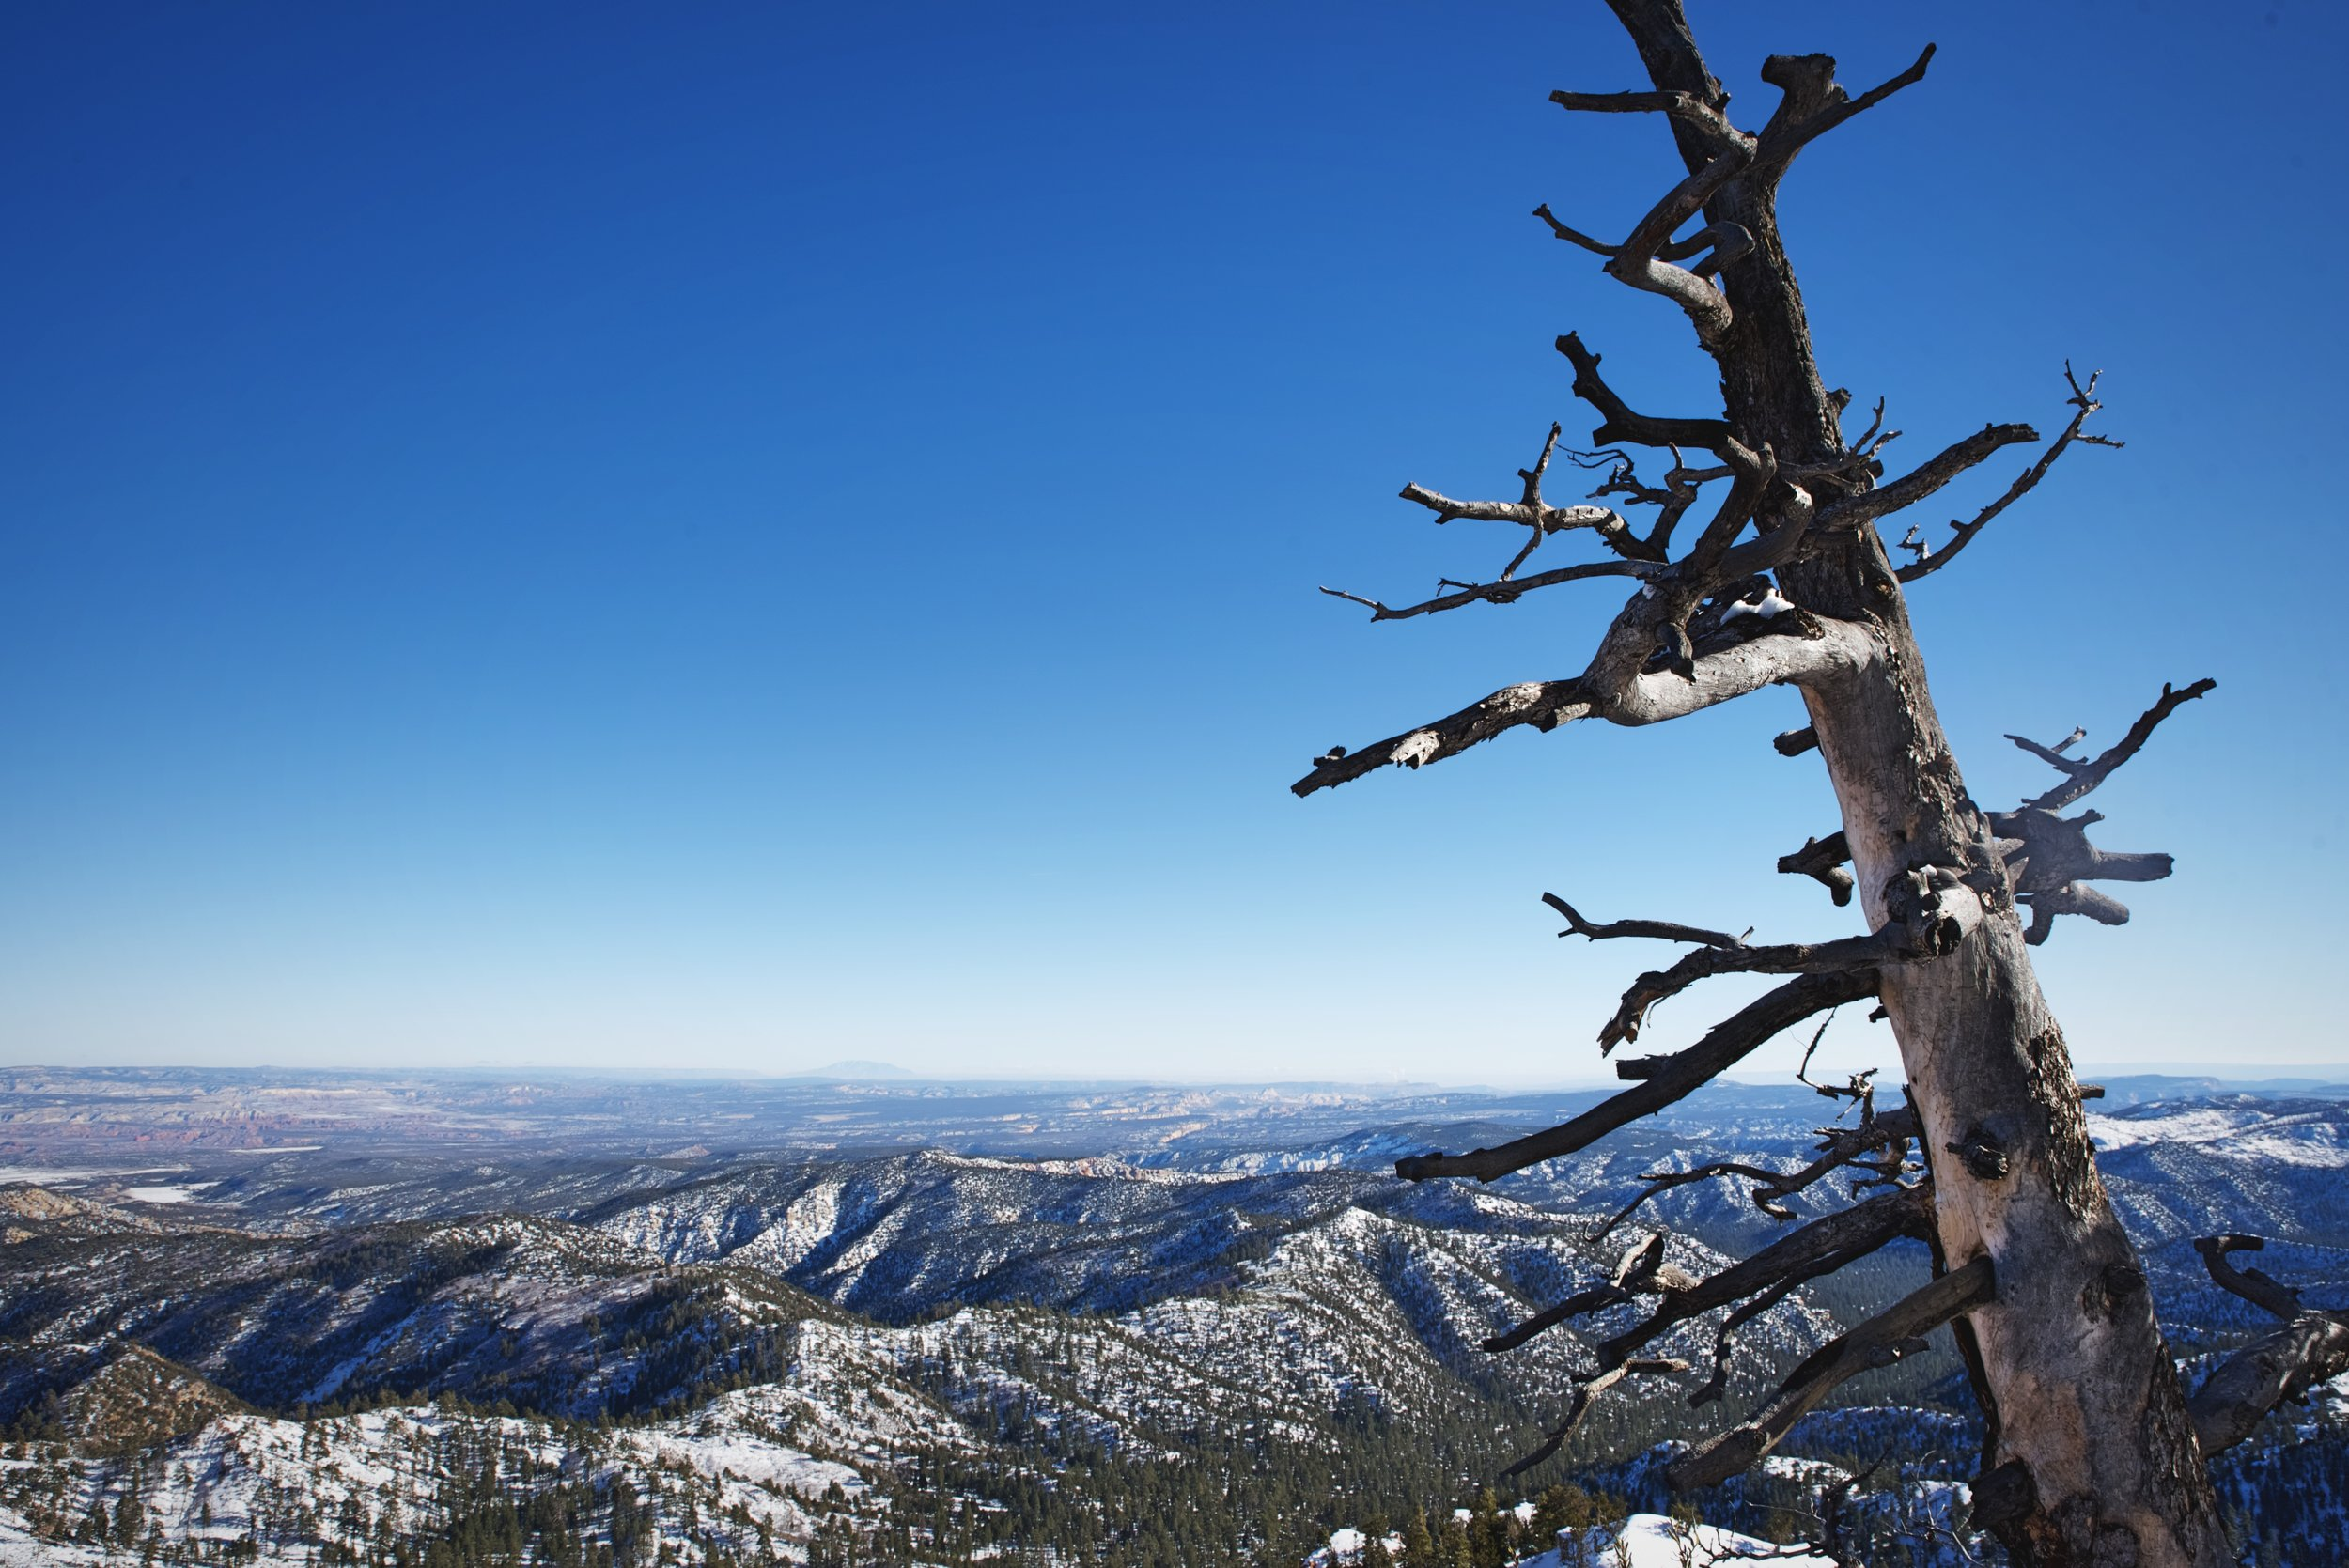 We thought this scraggly old tree really added to the view at Piracy Point. Bryce Canyon is also home to some ancient (though relatively young for the species)  bristlecone pines.